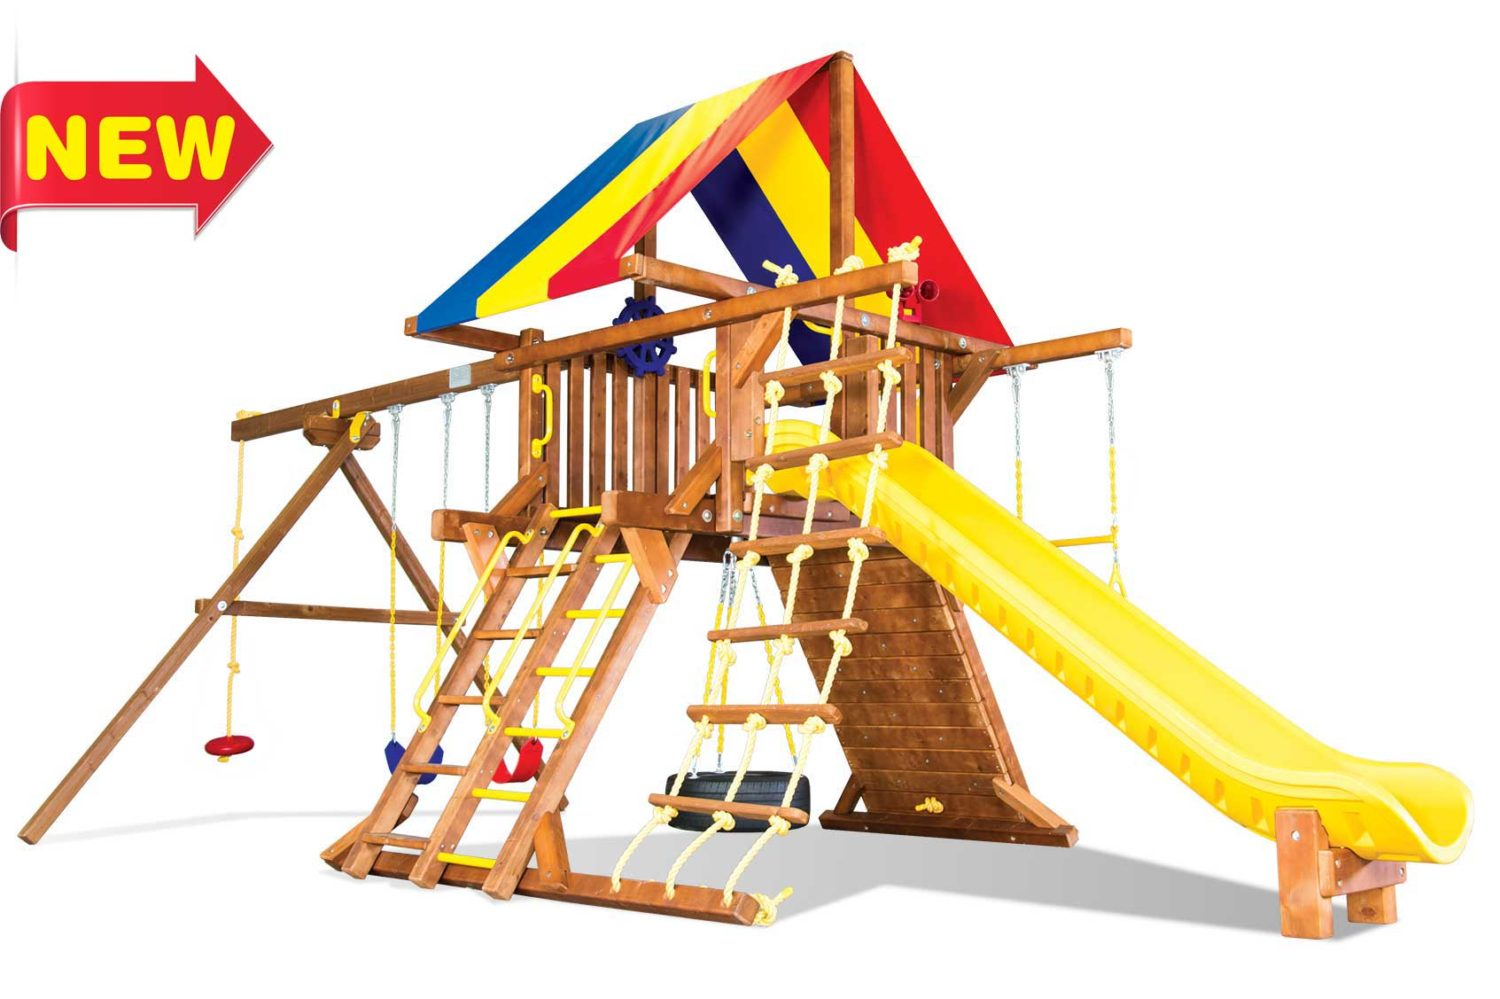 Sunshine Turbo Feature Castle Pkg II Wooden Swing Sets